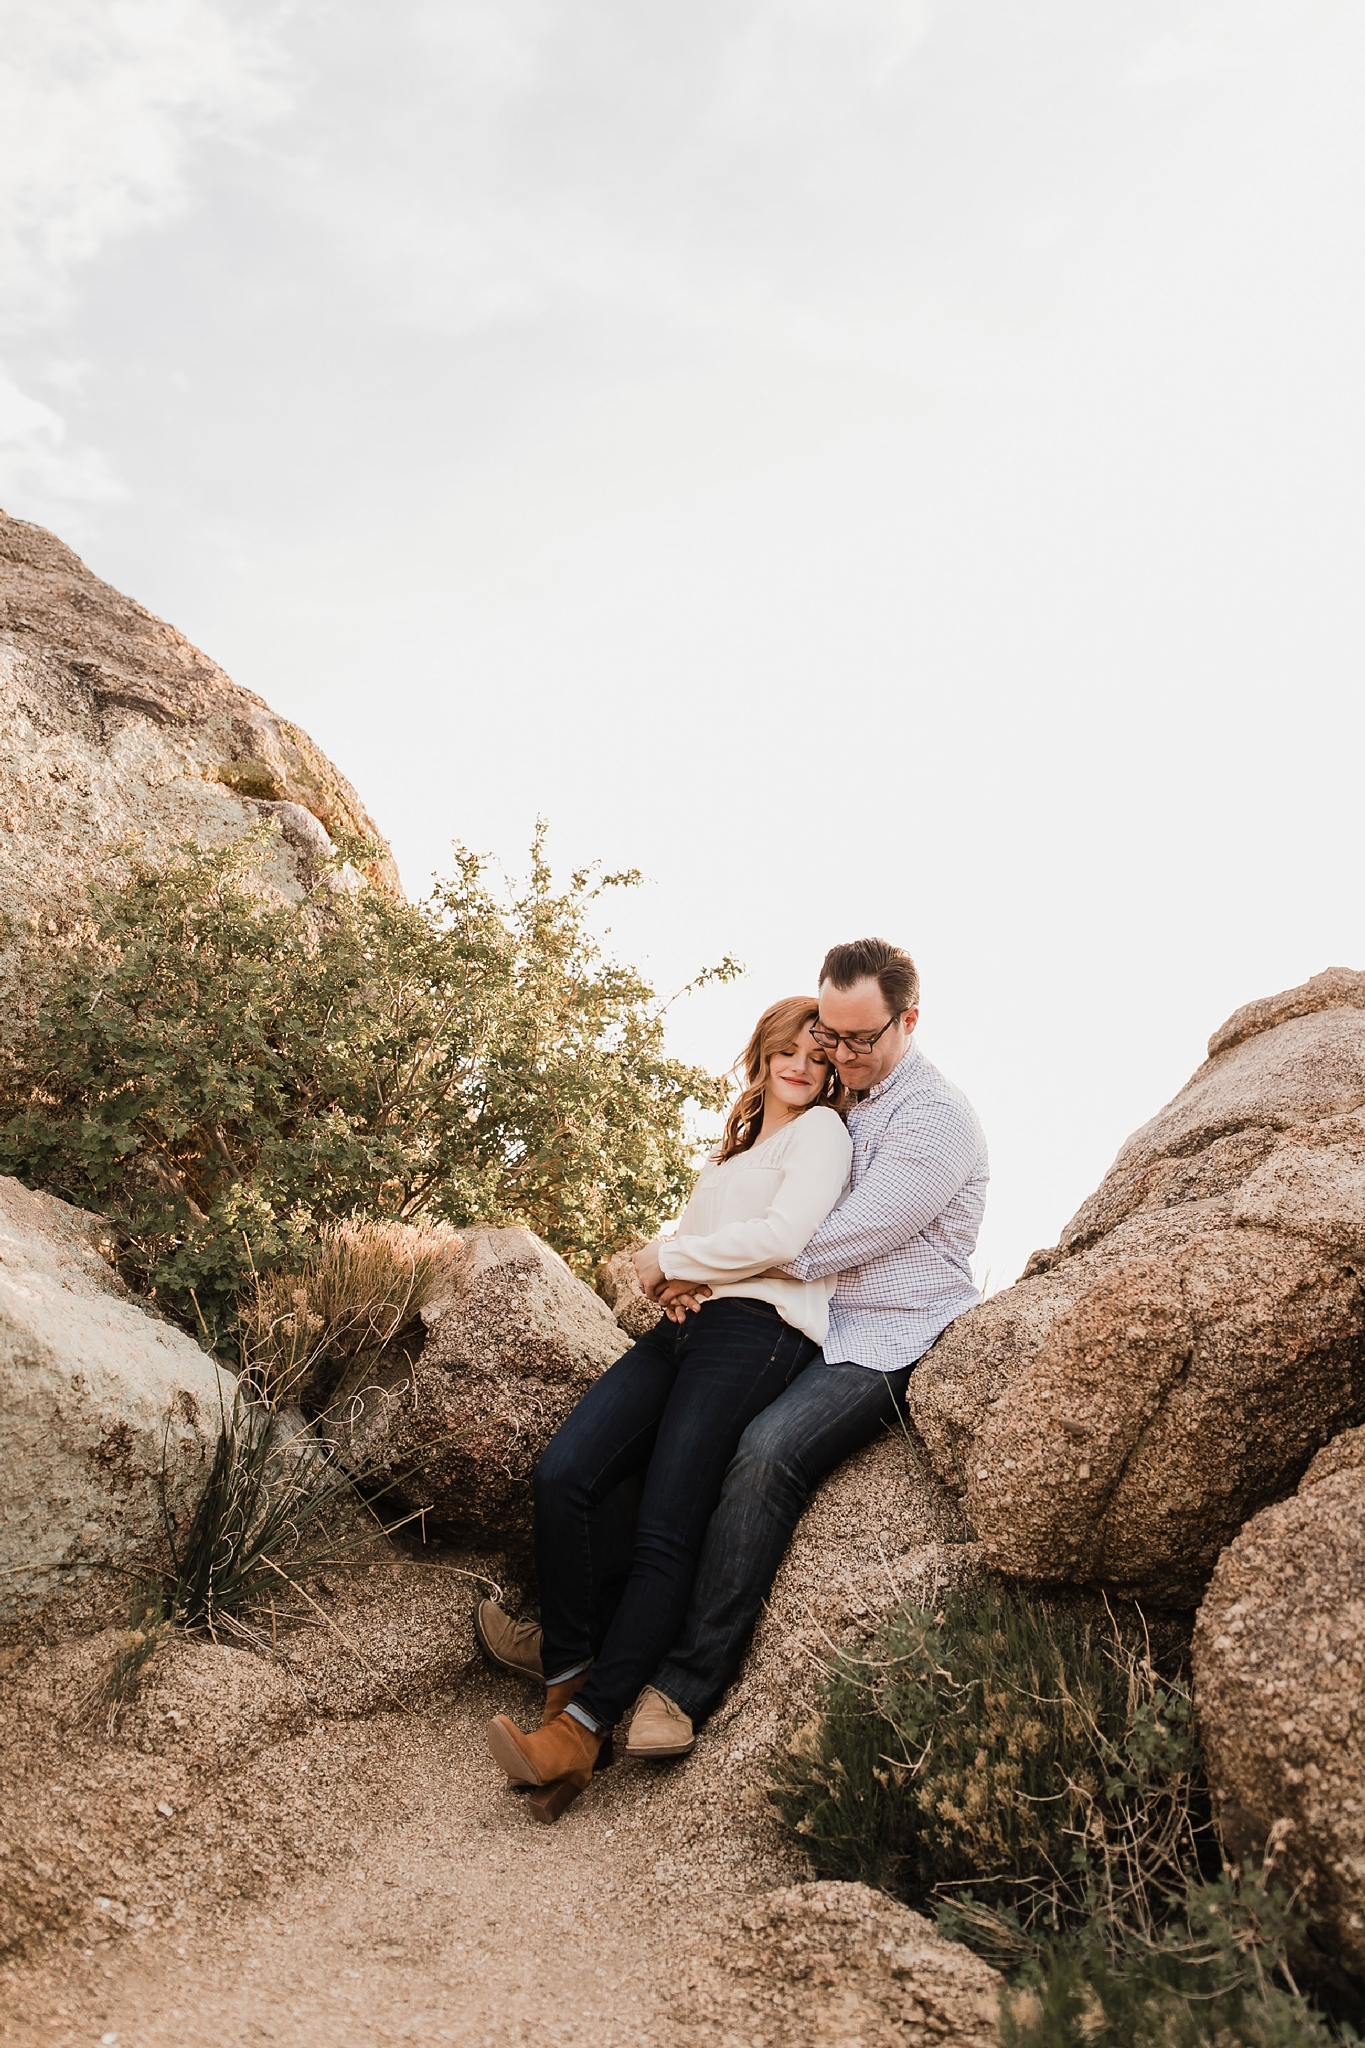 Alicia+lucia+photography+-+albuquerque+wedding+photographer+-+santa+fe+wedding+photography+-+new+mexico+wedding+photographer+-+new+mexico+wedding+-+new+mexico+engagement+-+engagement+photographer+-+mountain+engagement+-+desert+engagement_0021.jpg